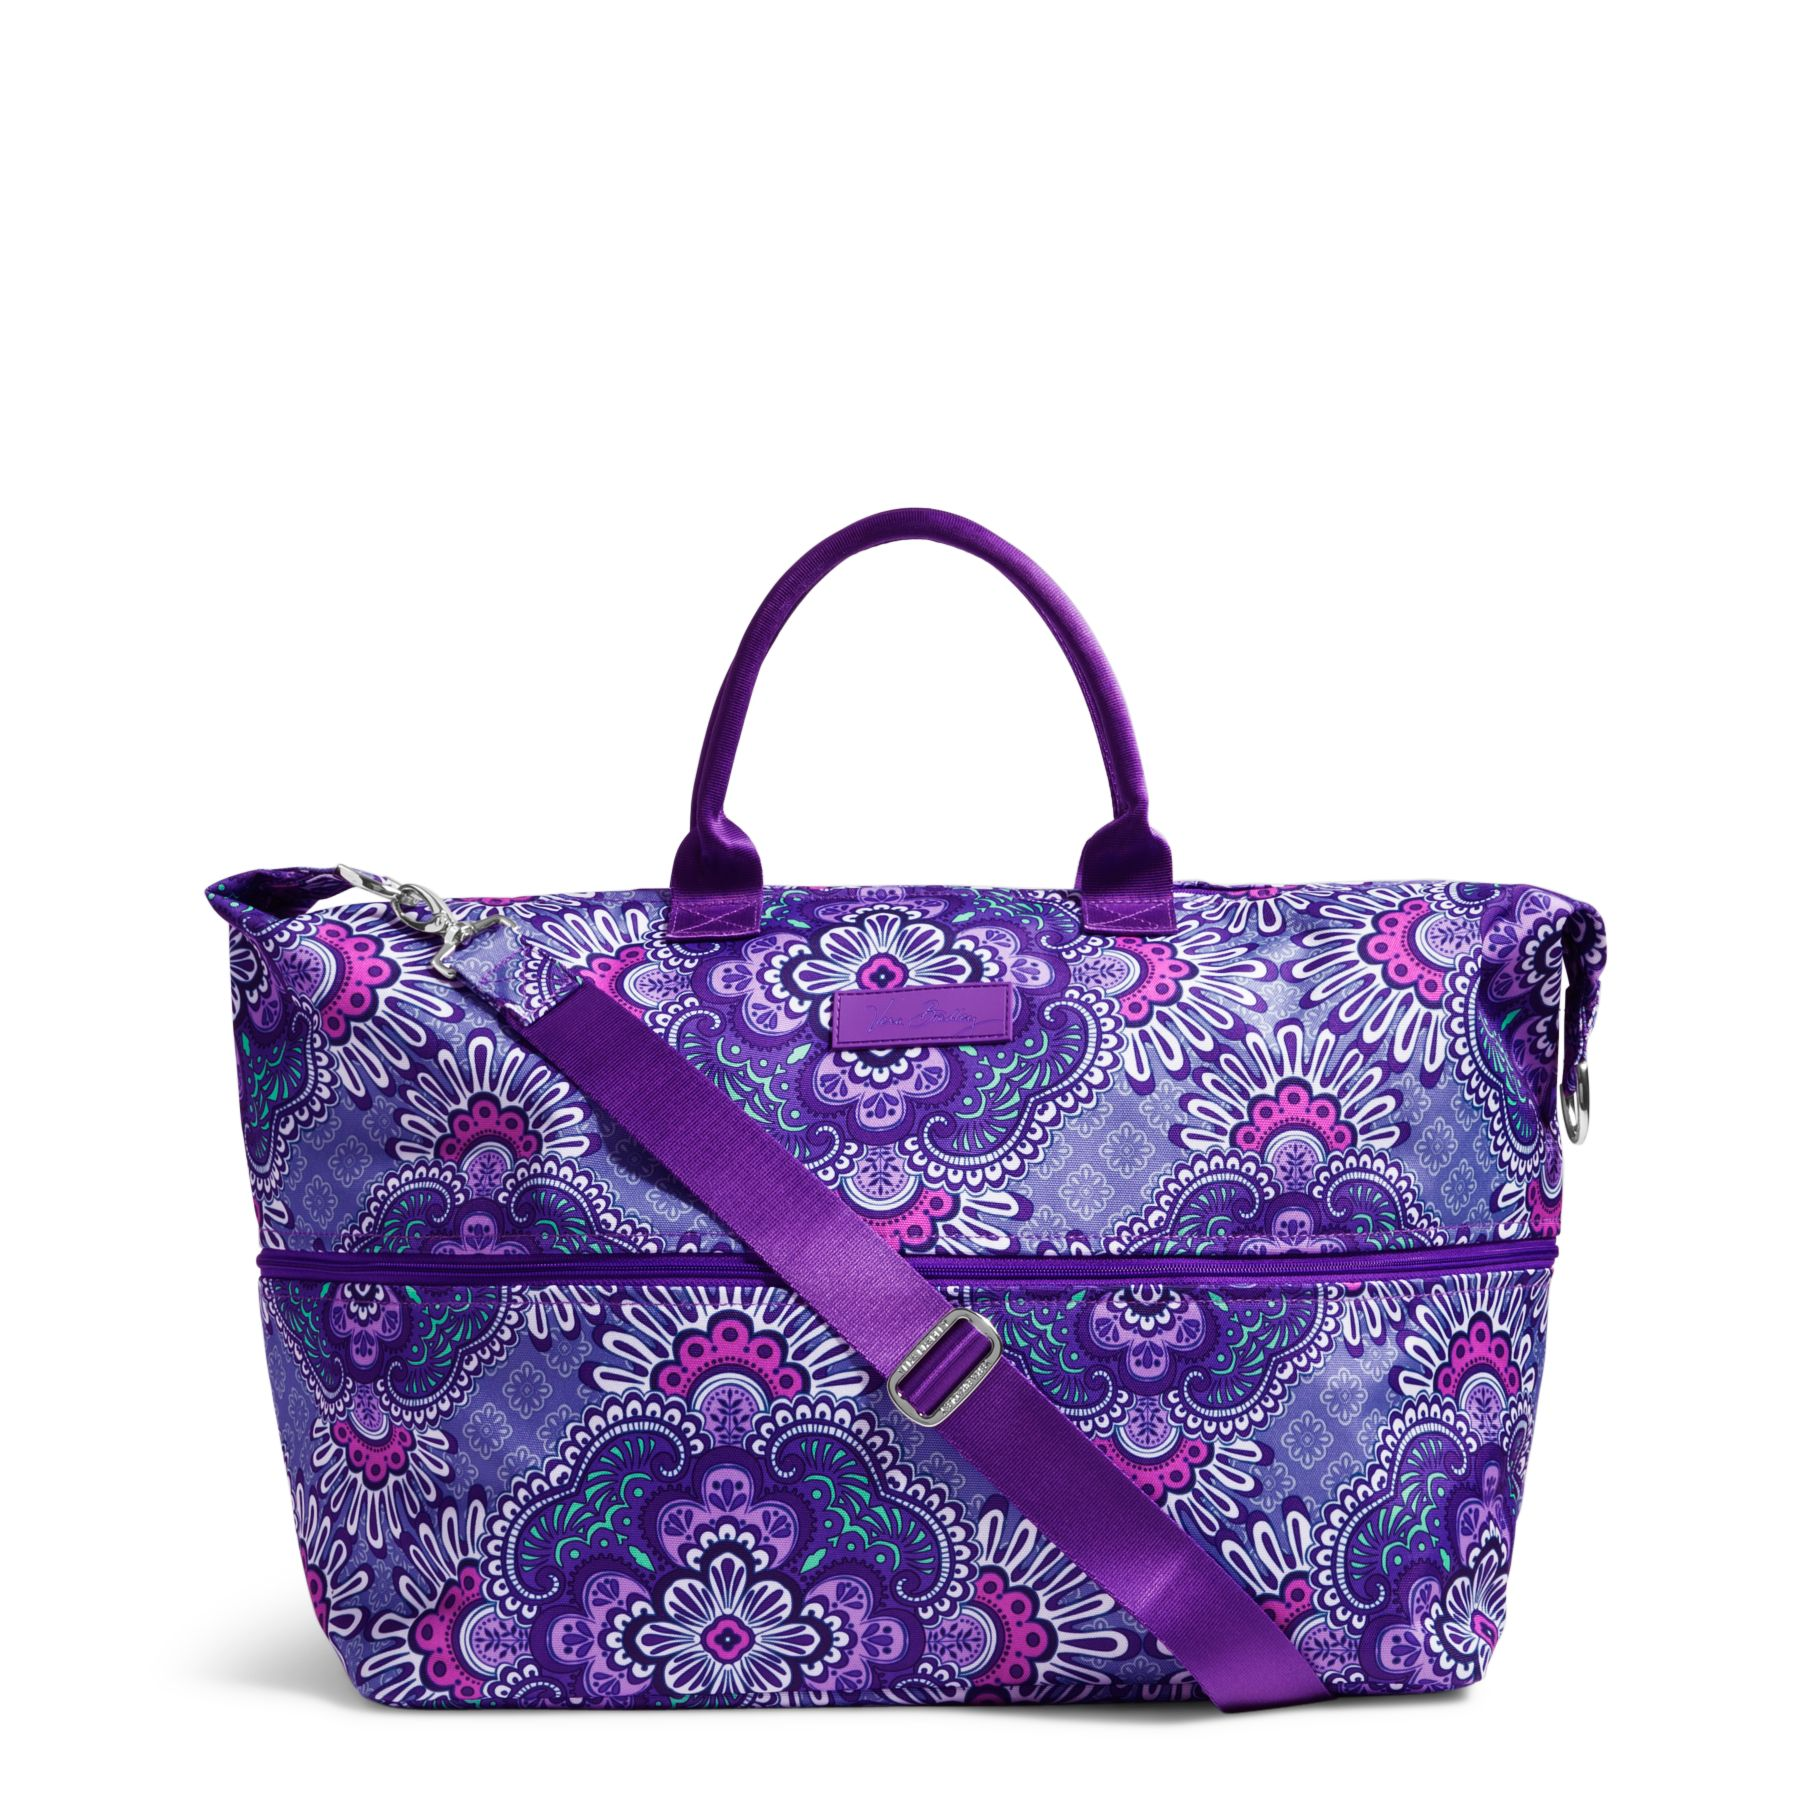 bag celine price - Travel | Vera Bradley